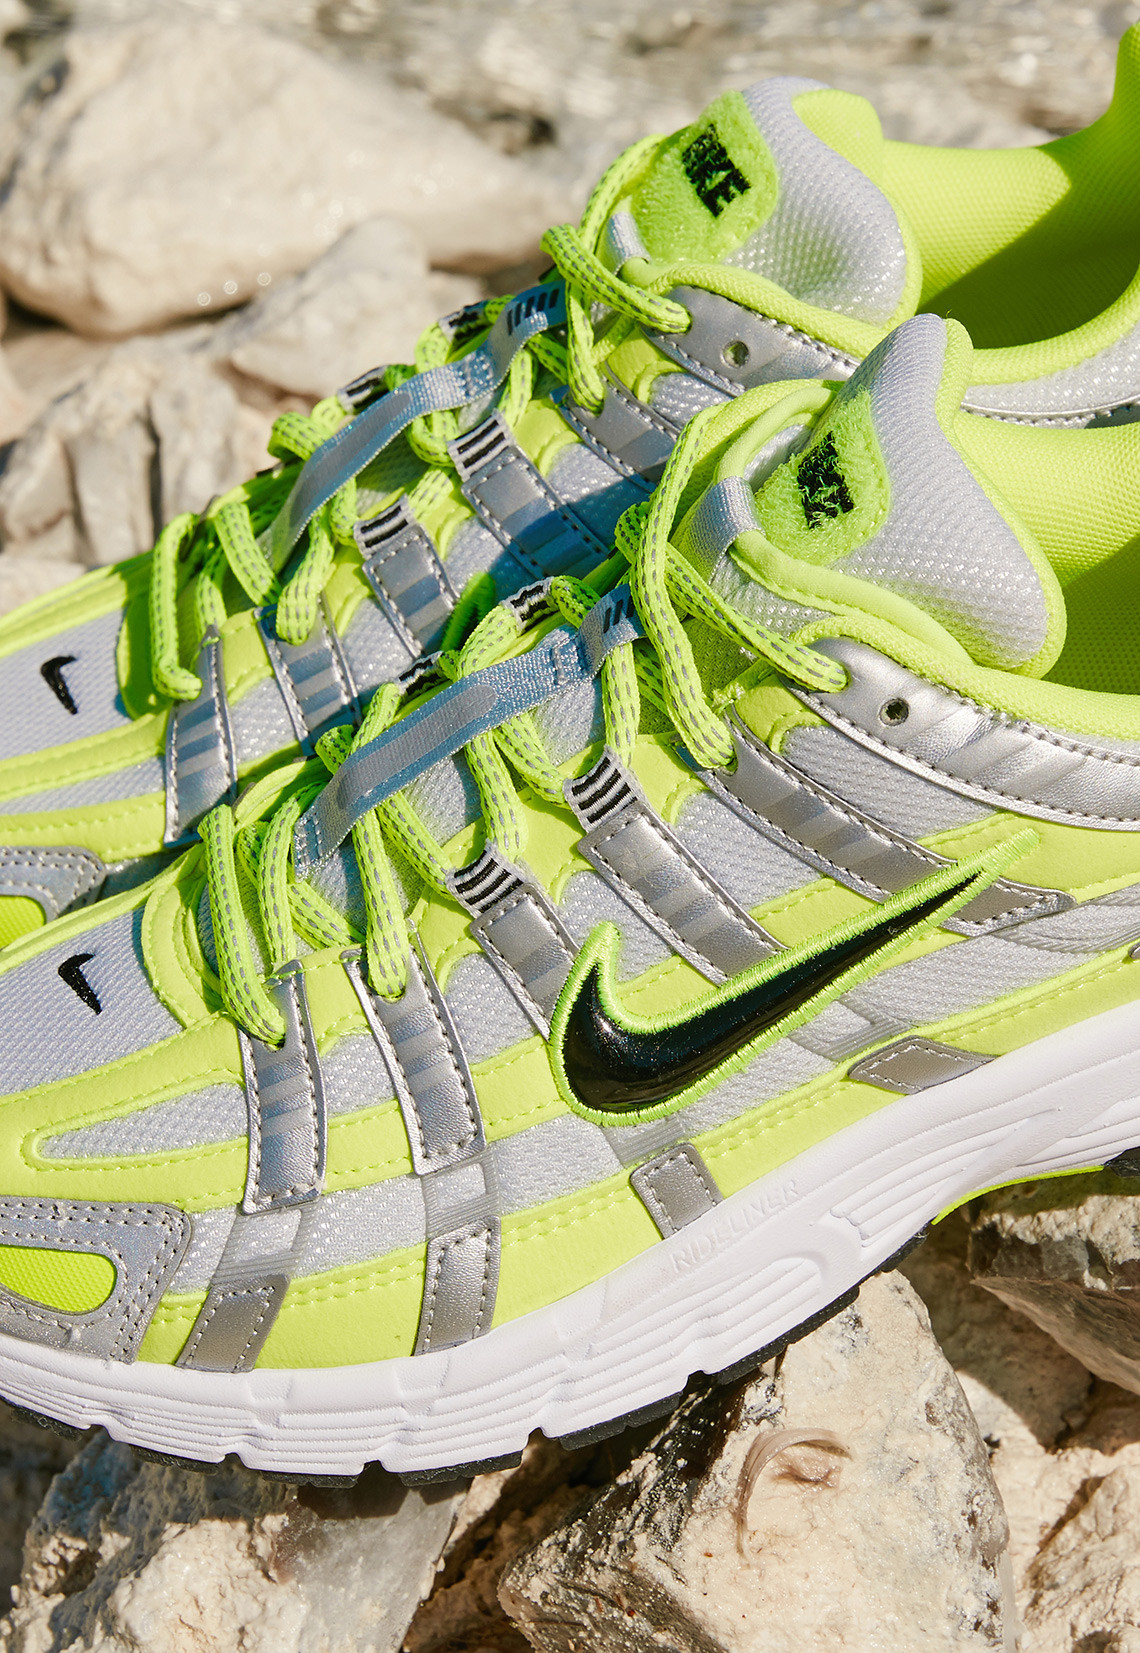 NAKED drop une Nike P 6000 Silver Volt exclusive | WAVE®